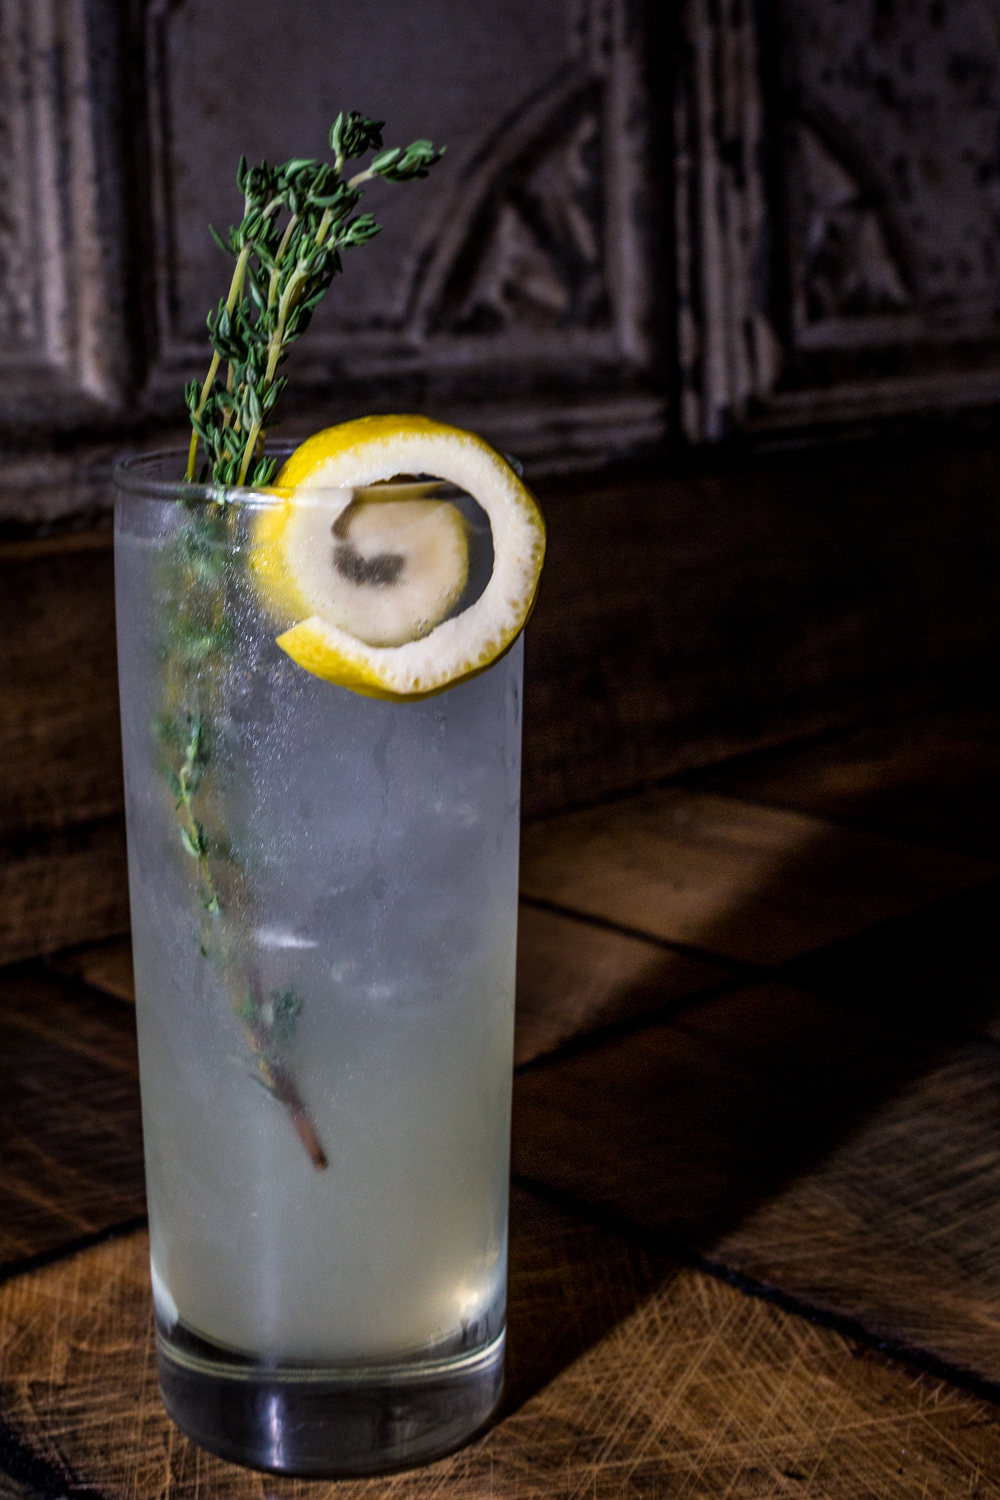 Lemon-Thyme Fizz: Bluecoat Gin, lemon-thyme syrup, and soda / Image: Catherine Viox // Published: 9.30.19